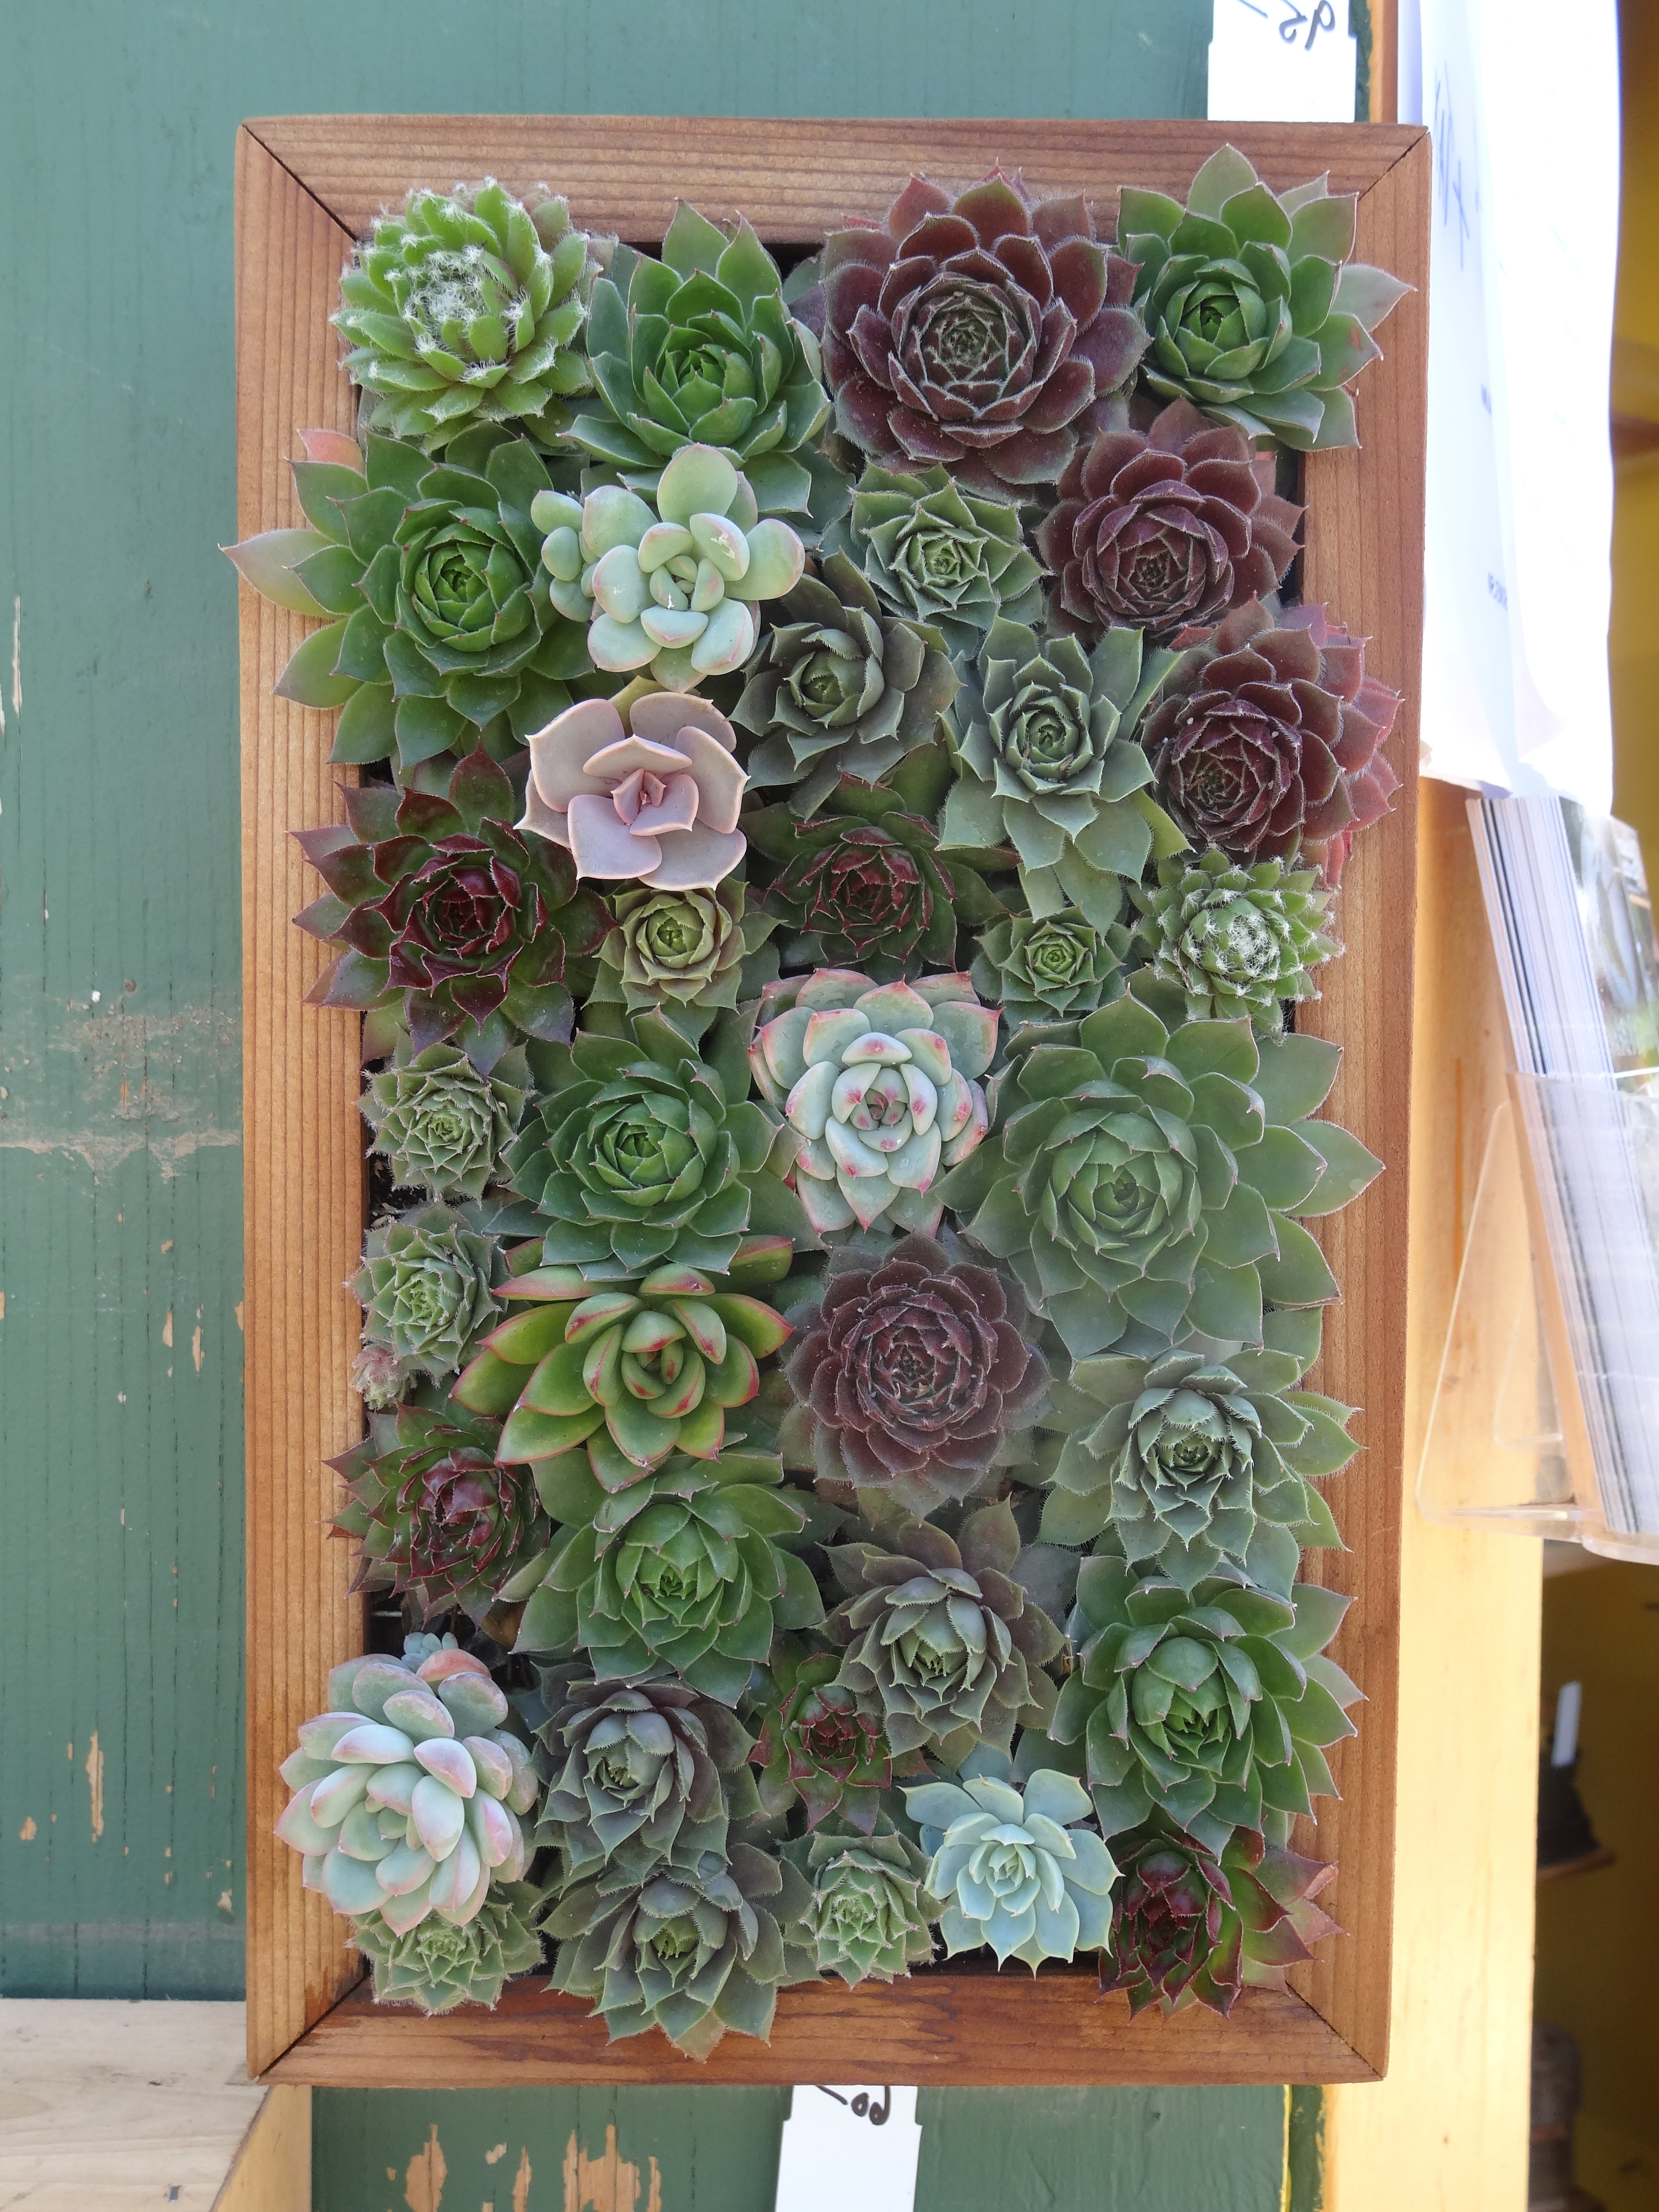 40 Lovely Ideas Succulent Wall Art (View 2 of 15)